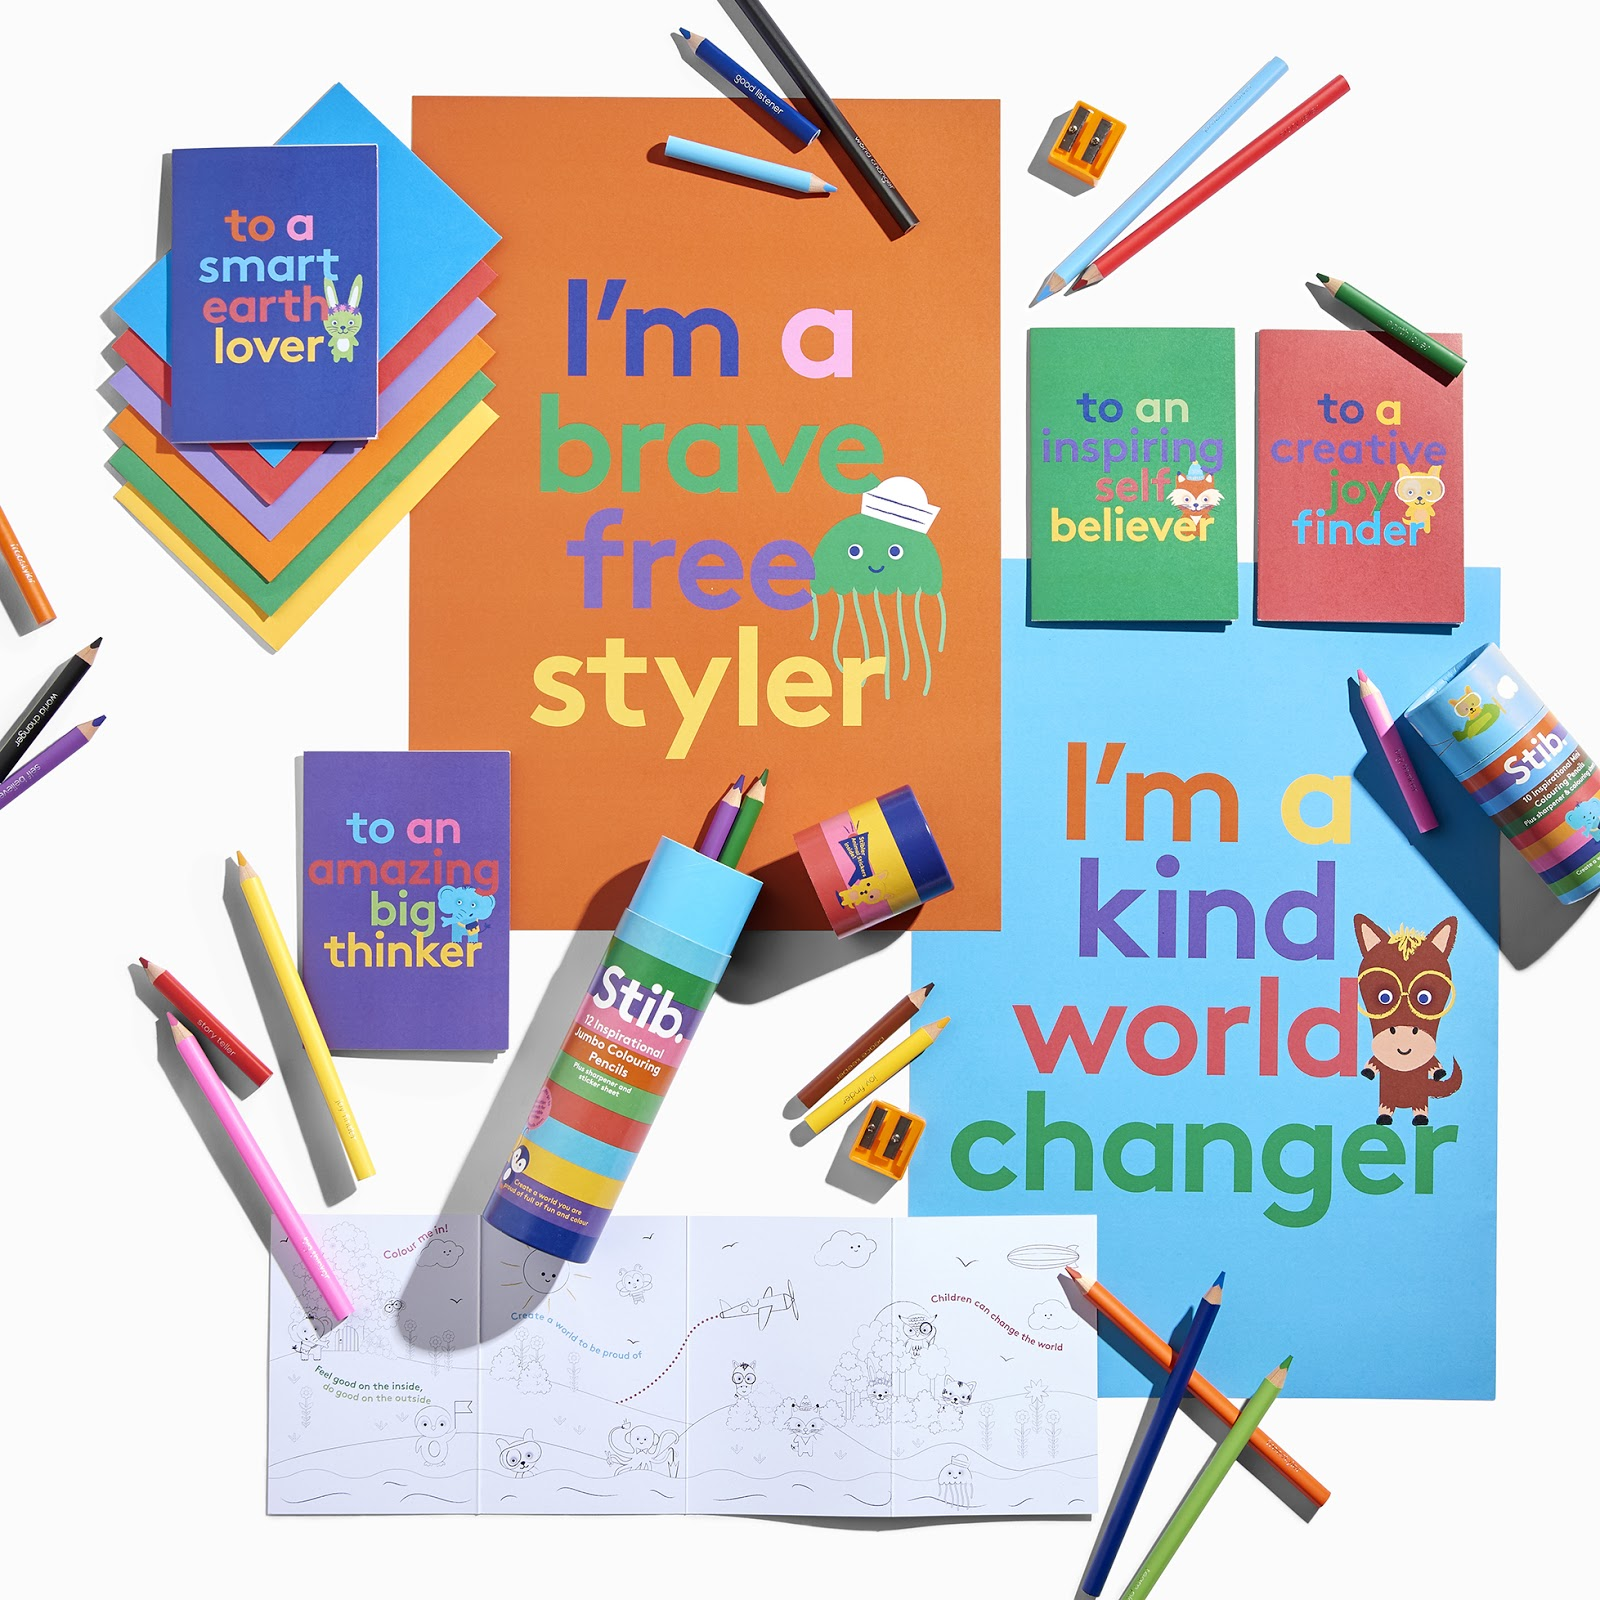 on-selling-inspirational-colouring-pencils